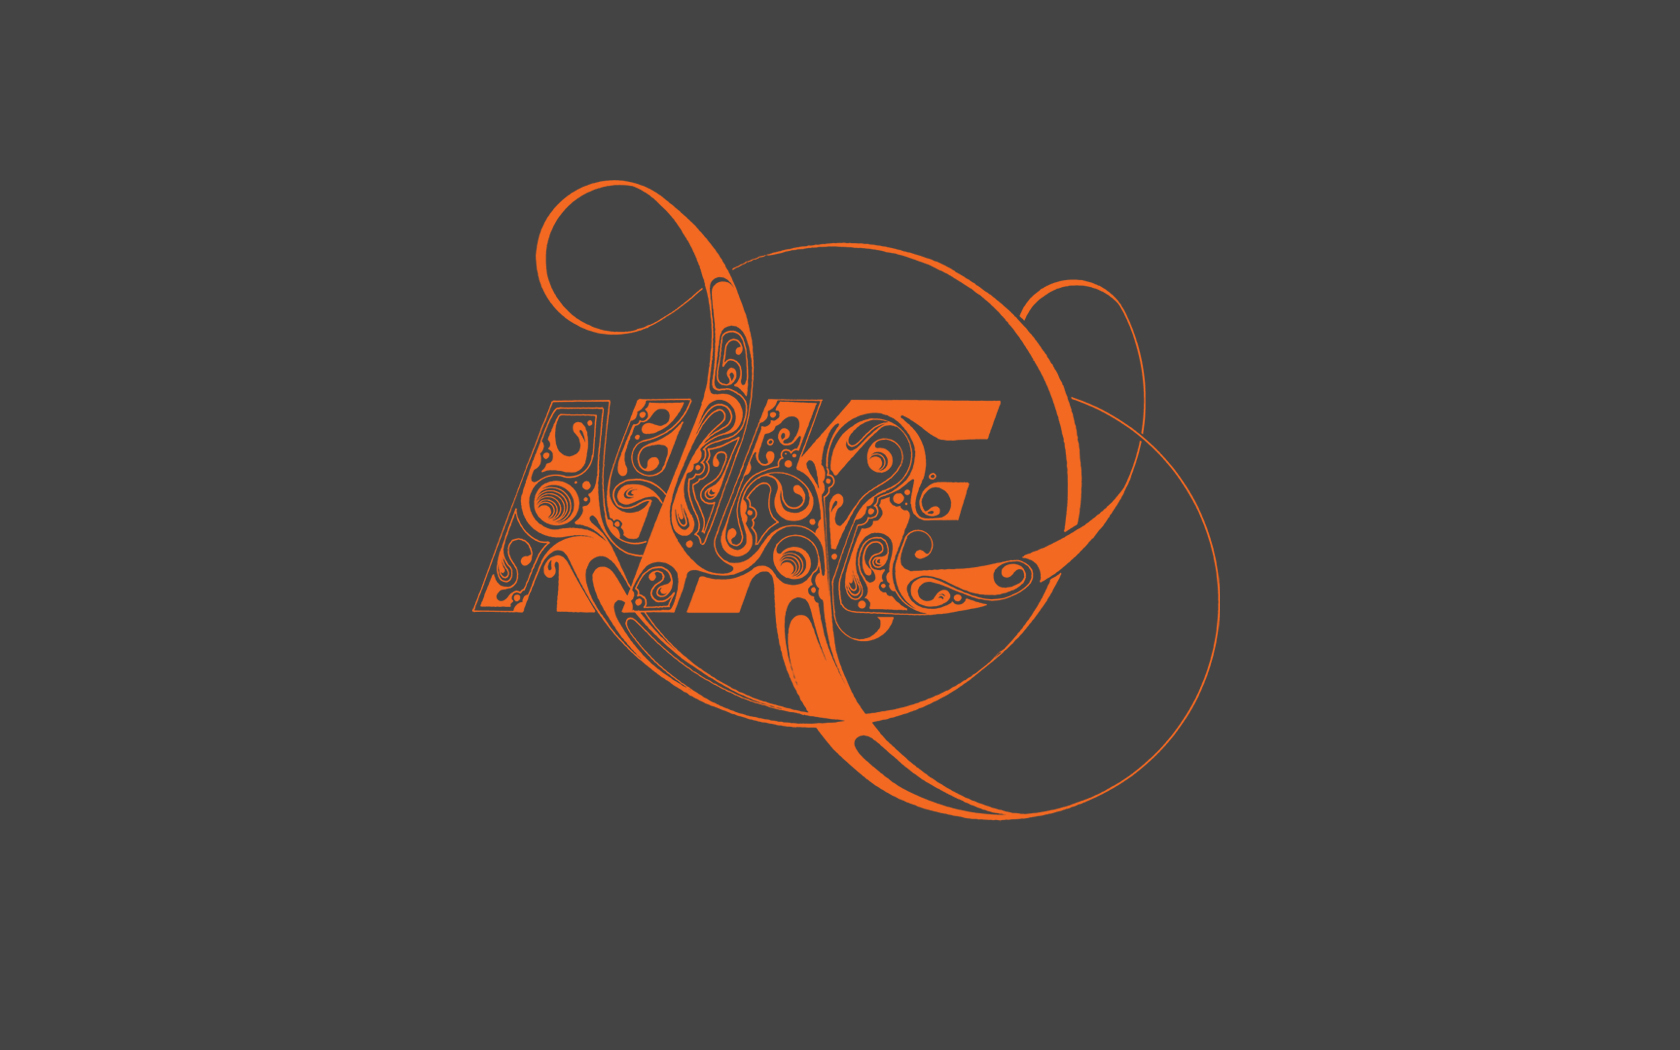 Graphic Design and Typography by Si Scott